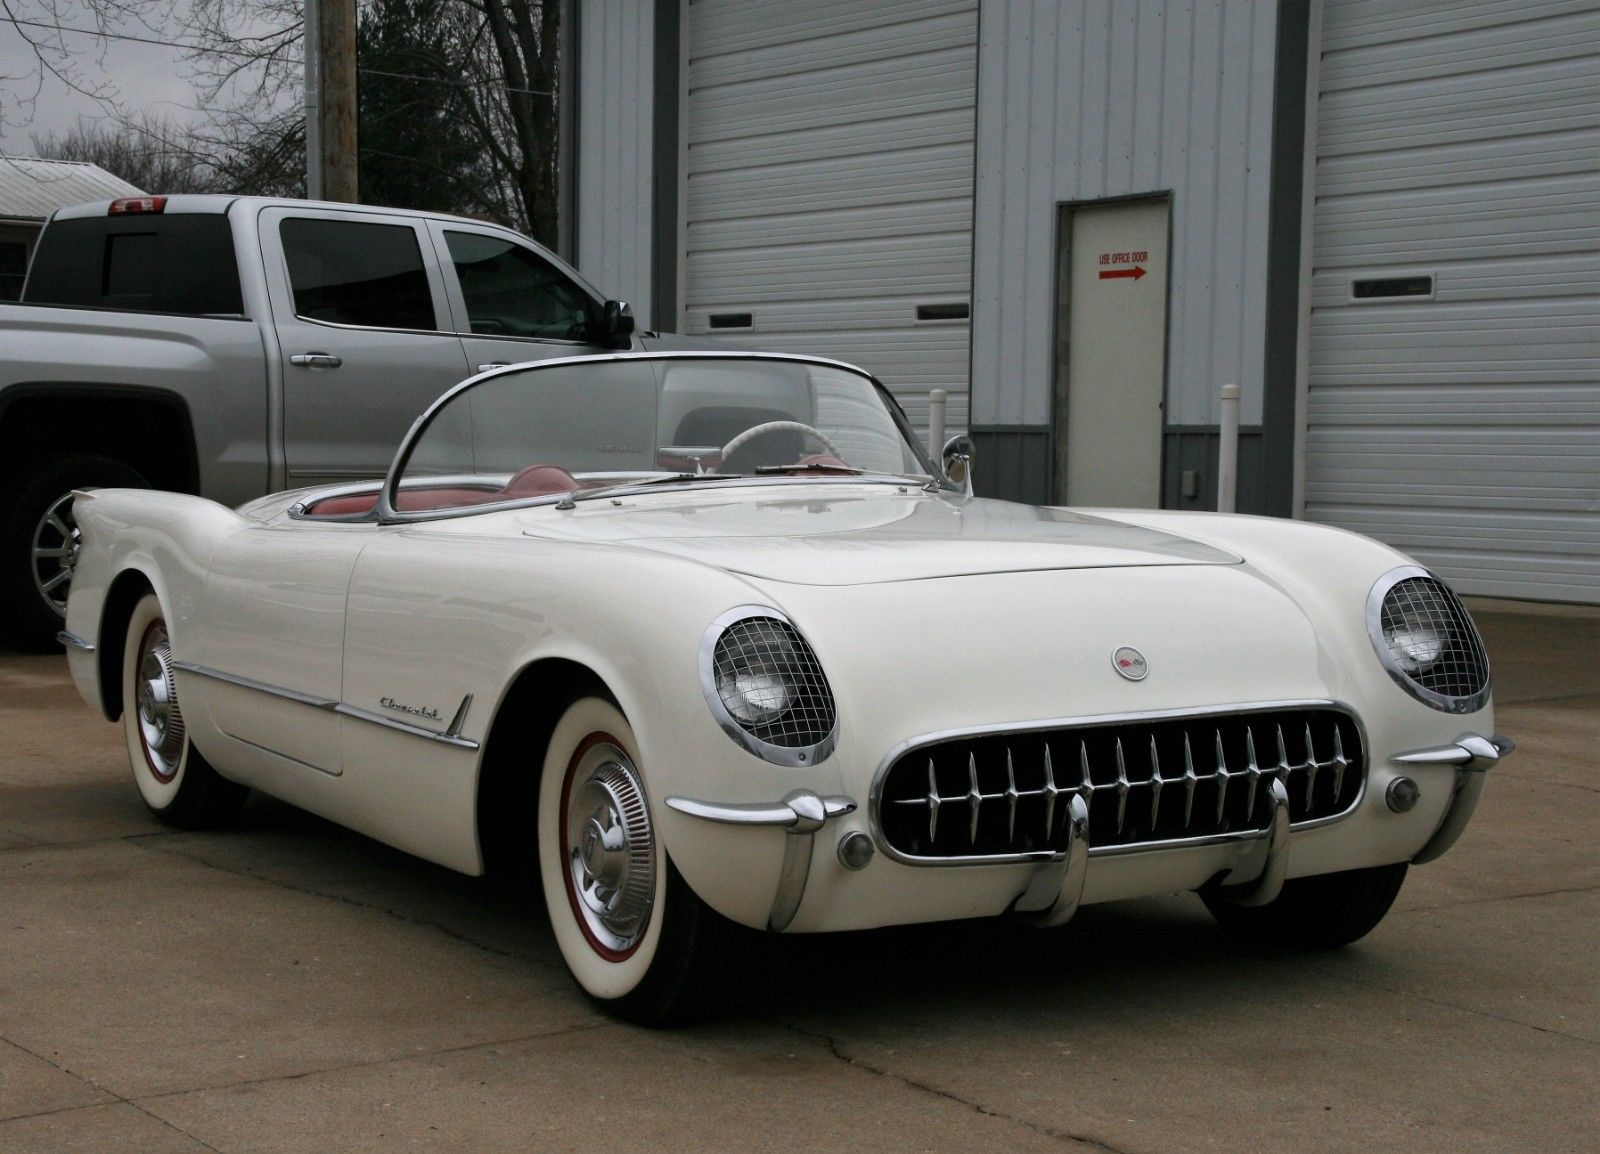 1956 C1 Corvette Ultimate Guide Overview Specs Vin Info 1955 Chevy Frame Number Location Performance More